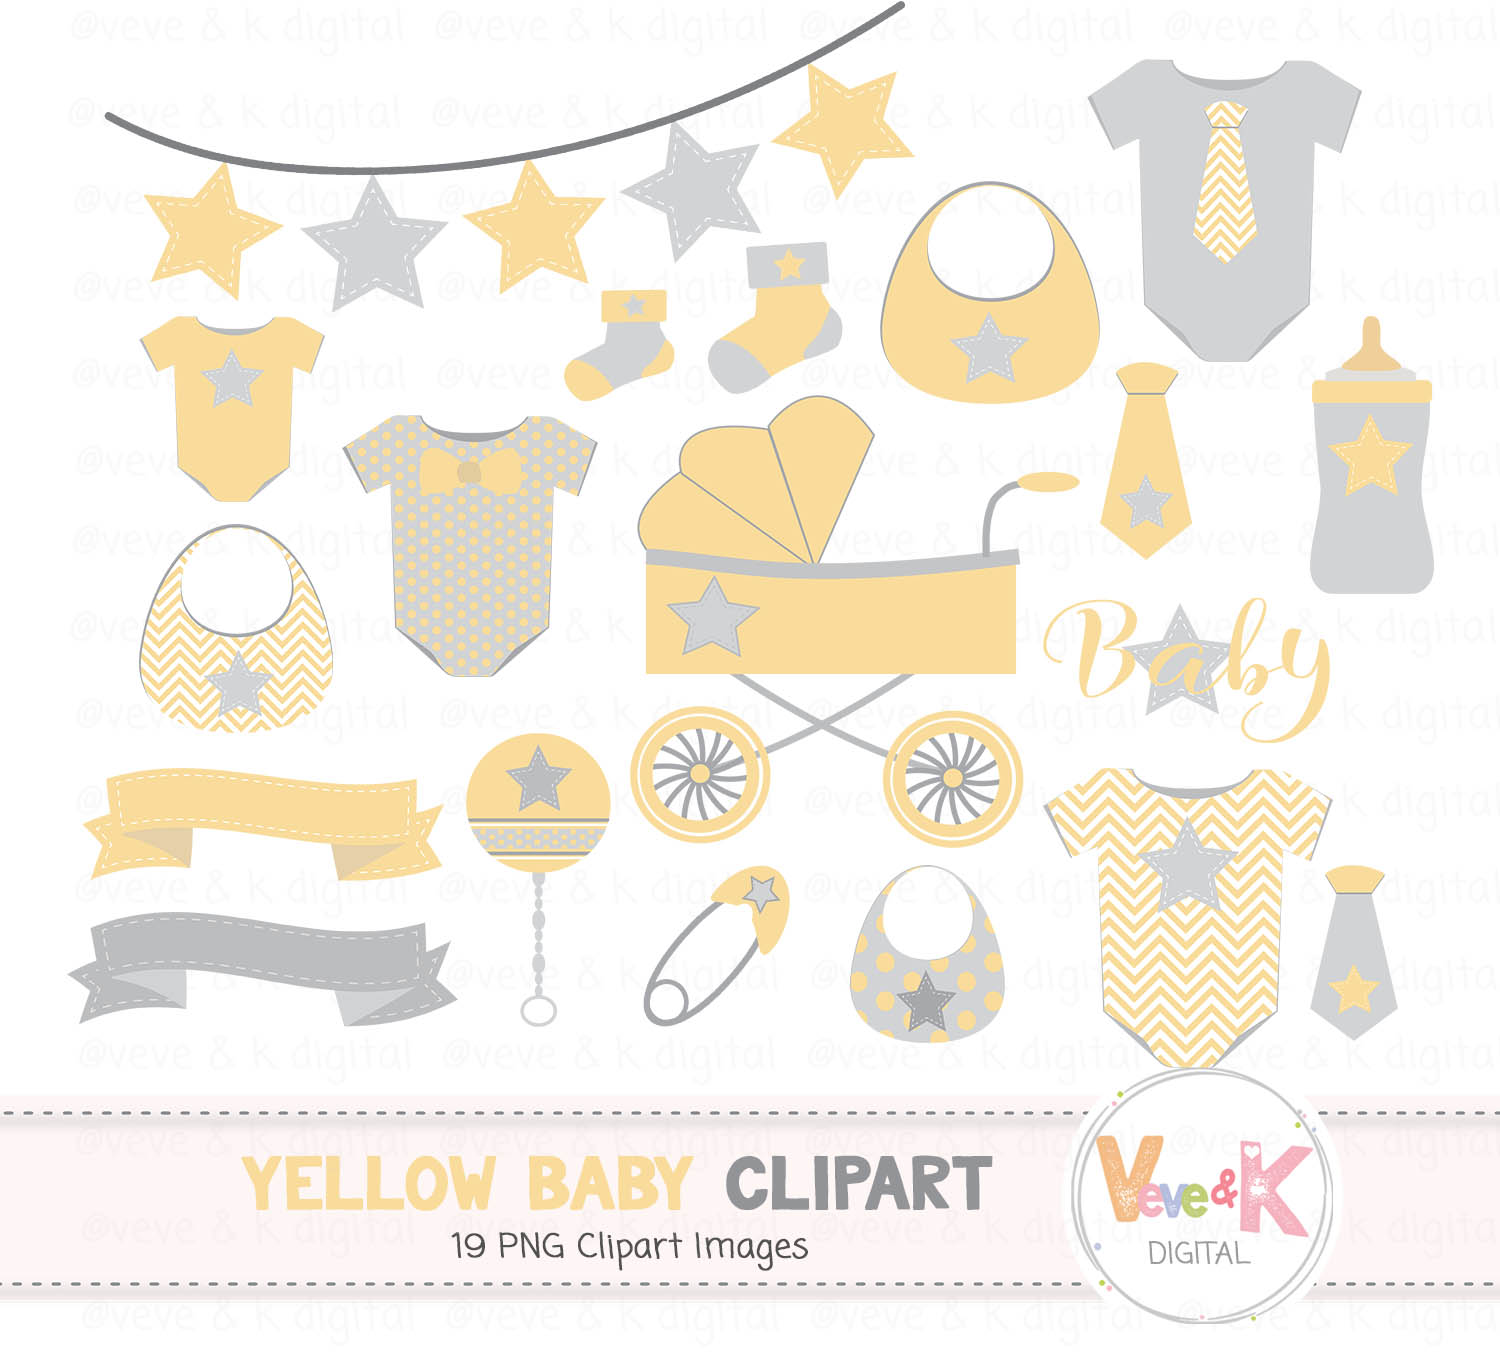 Yellow Baby Clipart, Gender Neutral Baby Clipart, Baby Shower Clipart, Baby  Graphics, Yellow and Gray Baby, Baby Shower Clipart, Baby Pack.